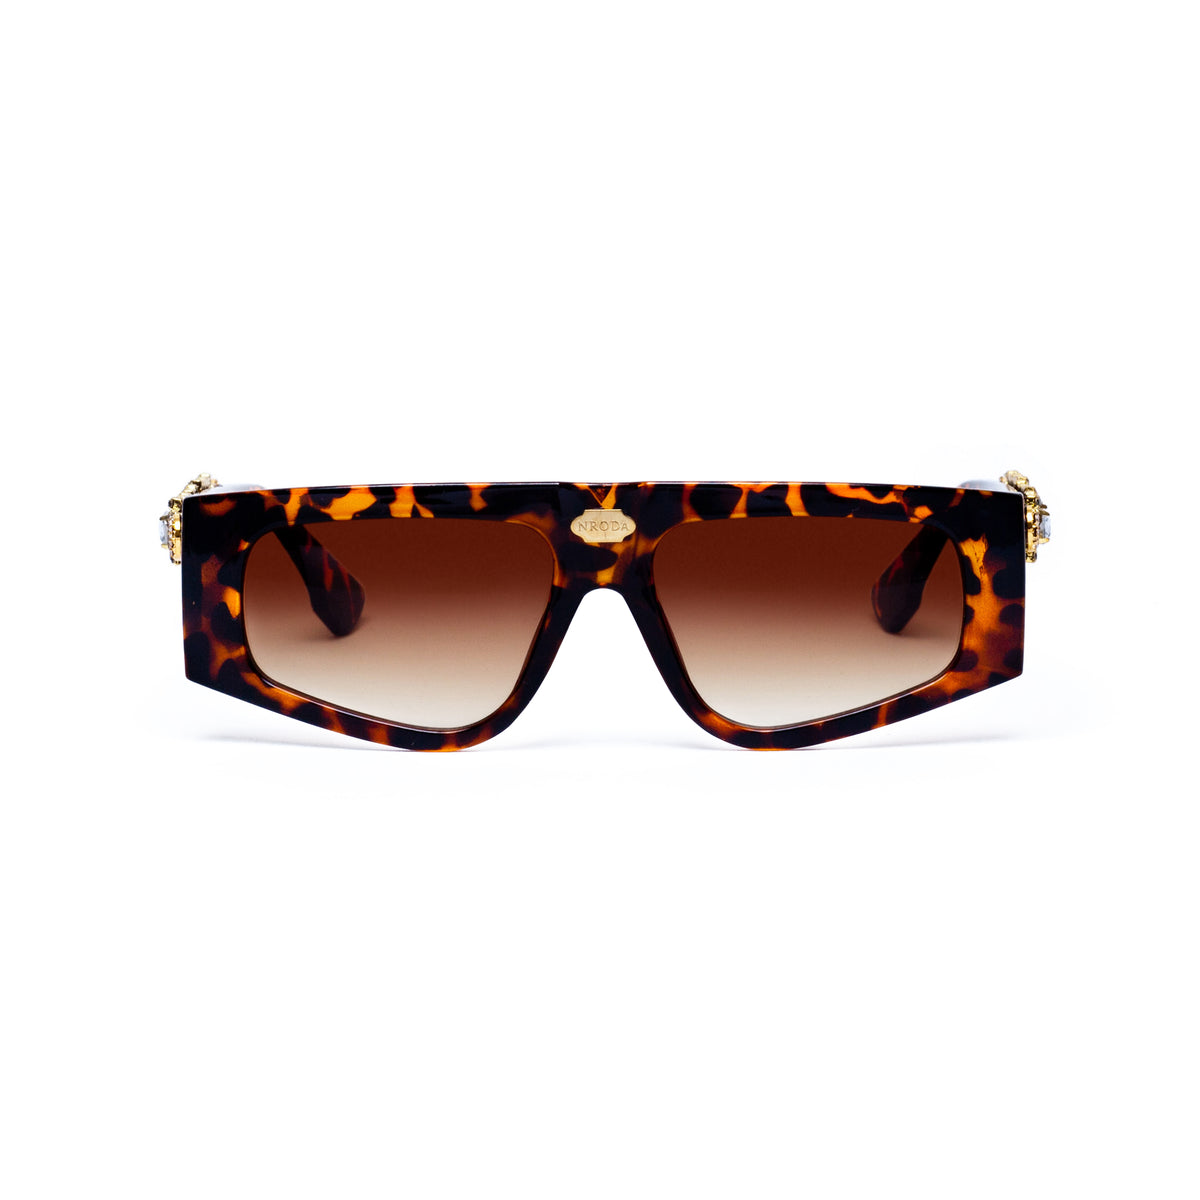 Mansion Retreat  Eyewear Sunglasses Collection, Tnemnroda man- NRODA